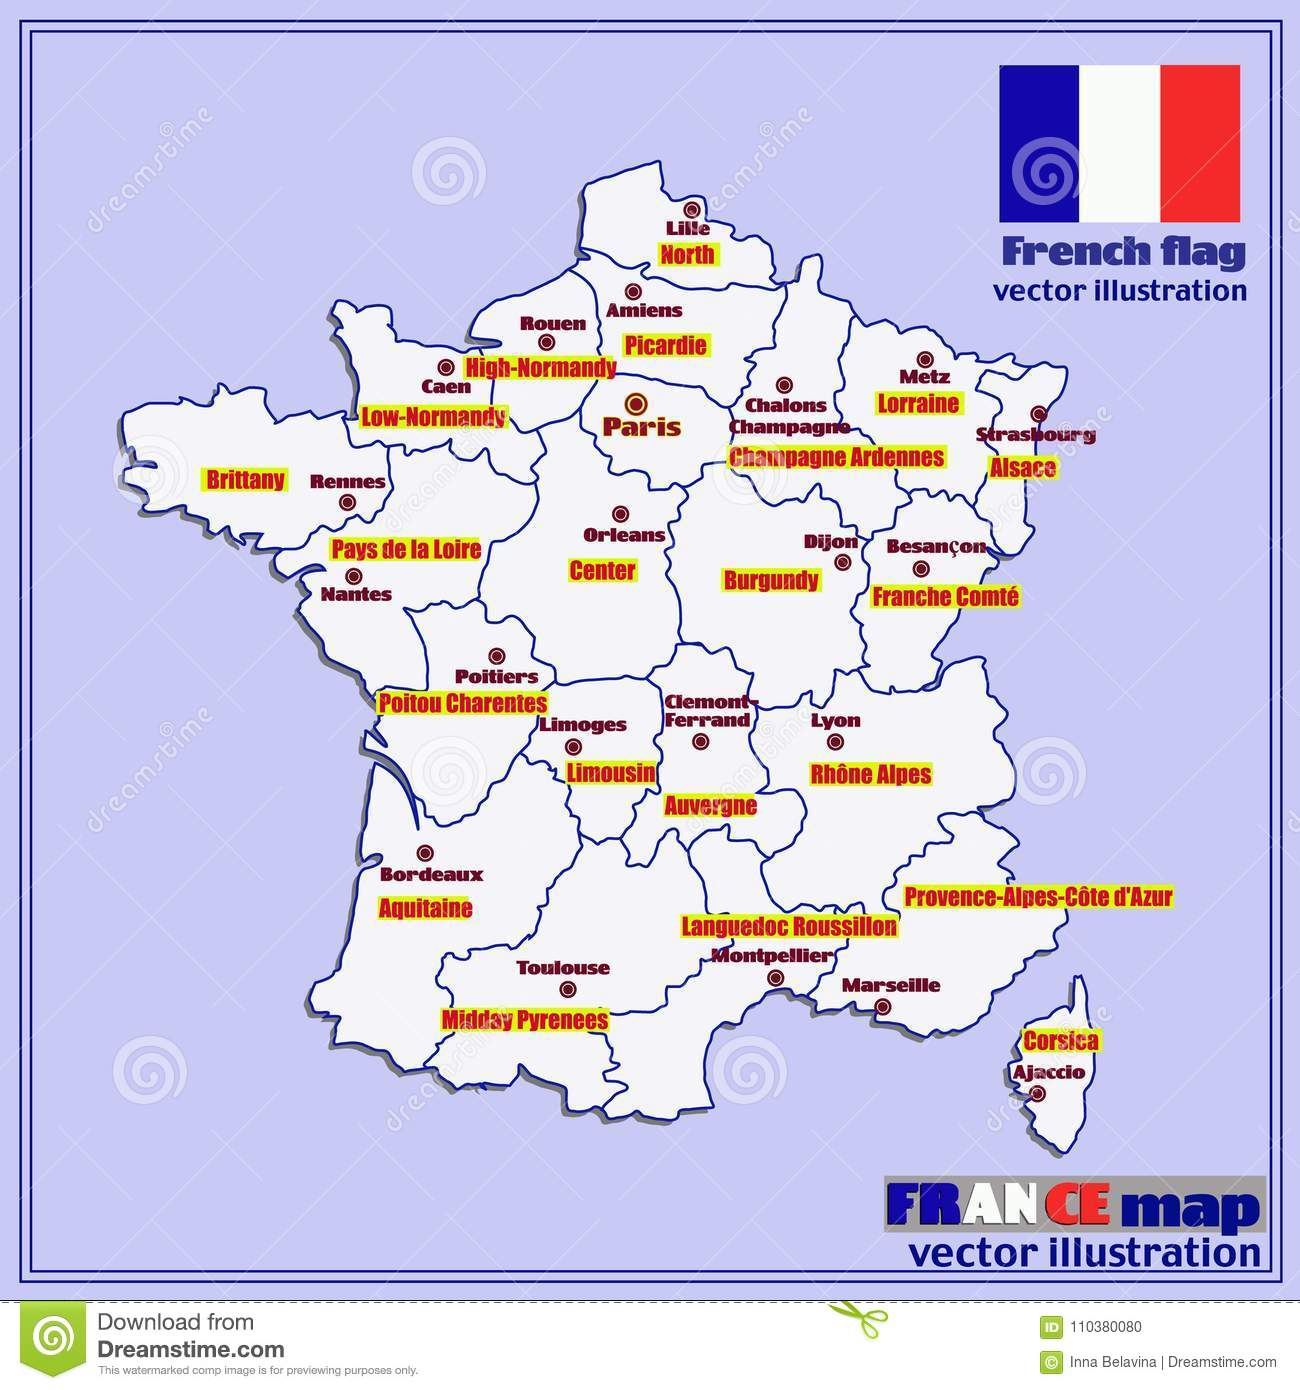 Map Of France With French Regions. Vector. Stock Vector pour Map De France Regions